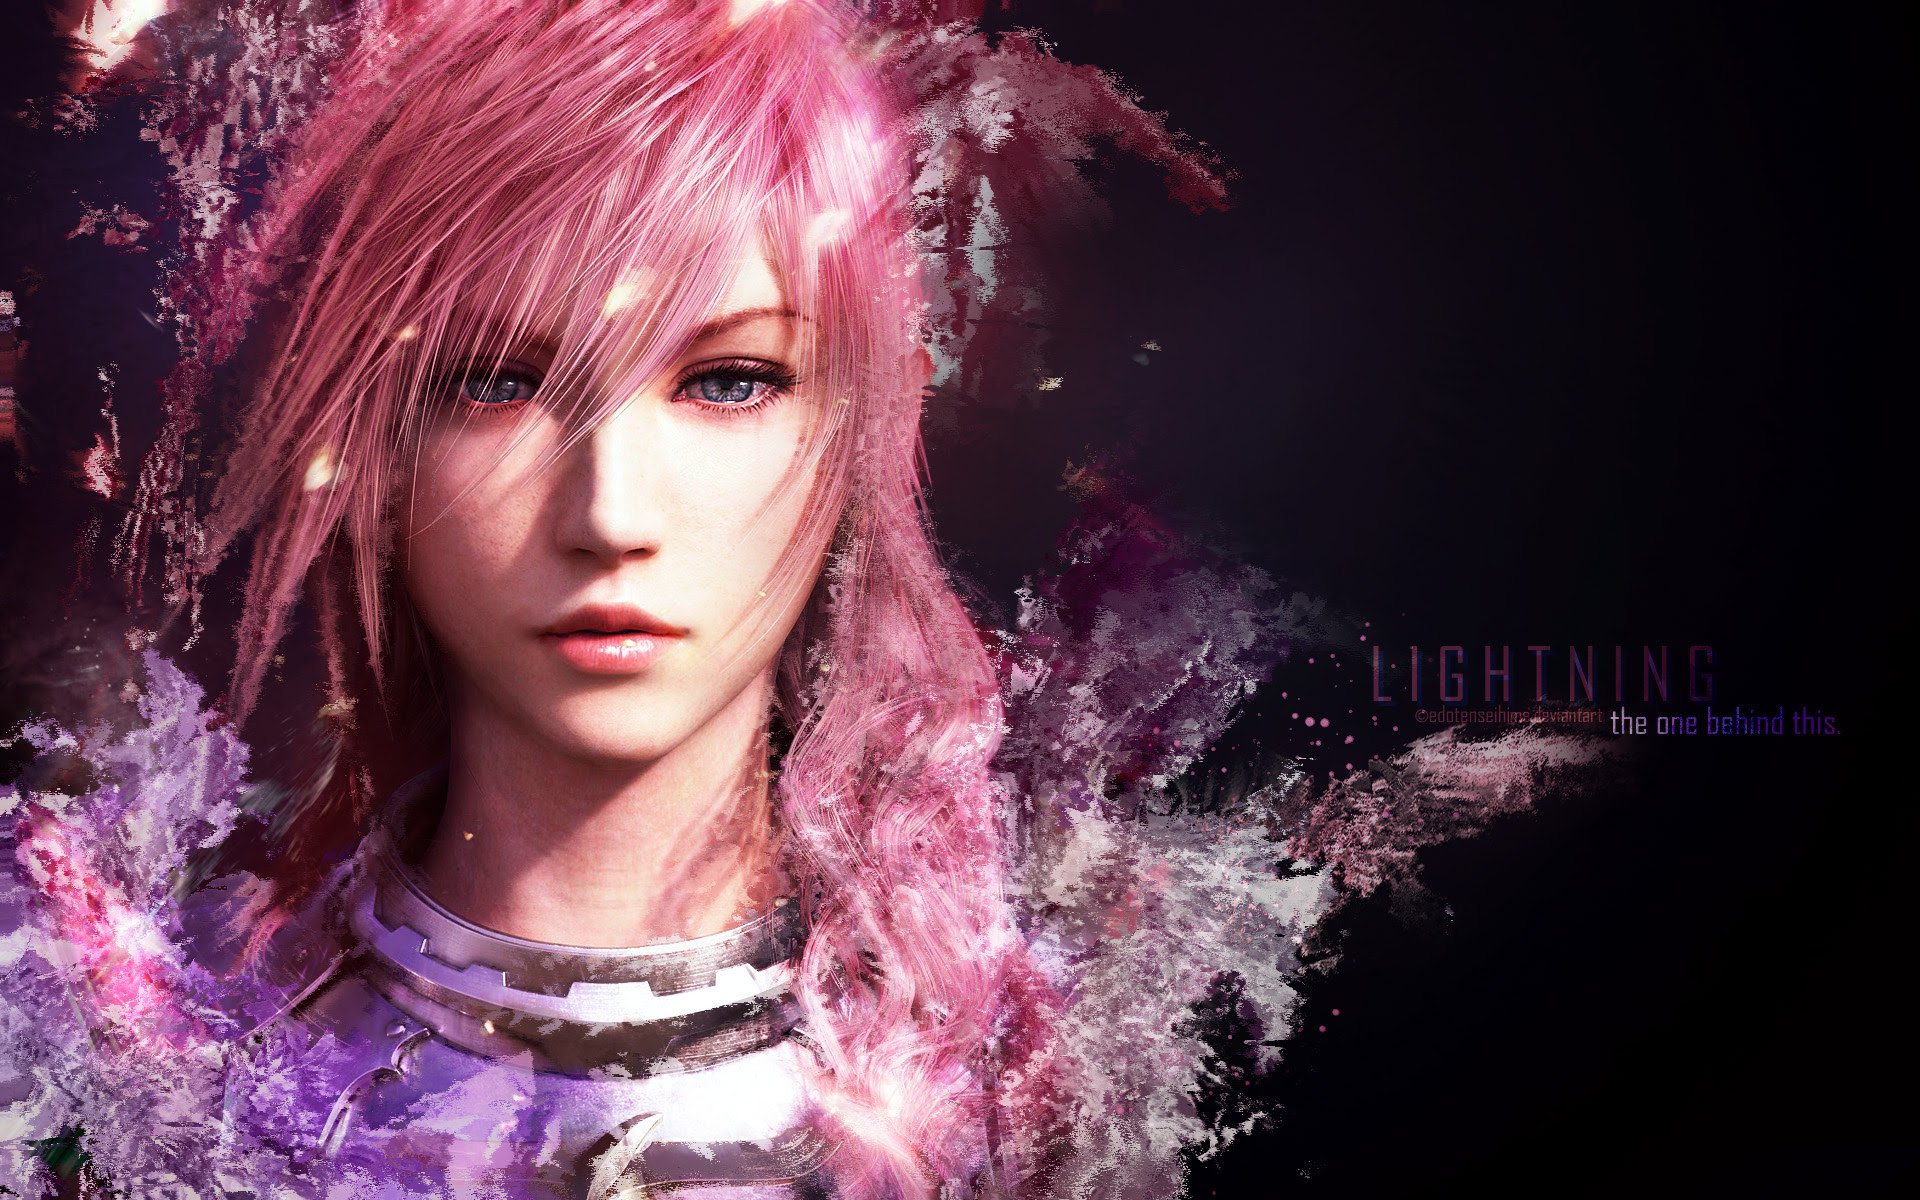 Final Fantasy Xiii Wallpaper Lightning The One Behind This